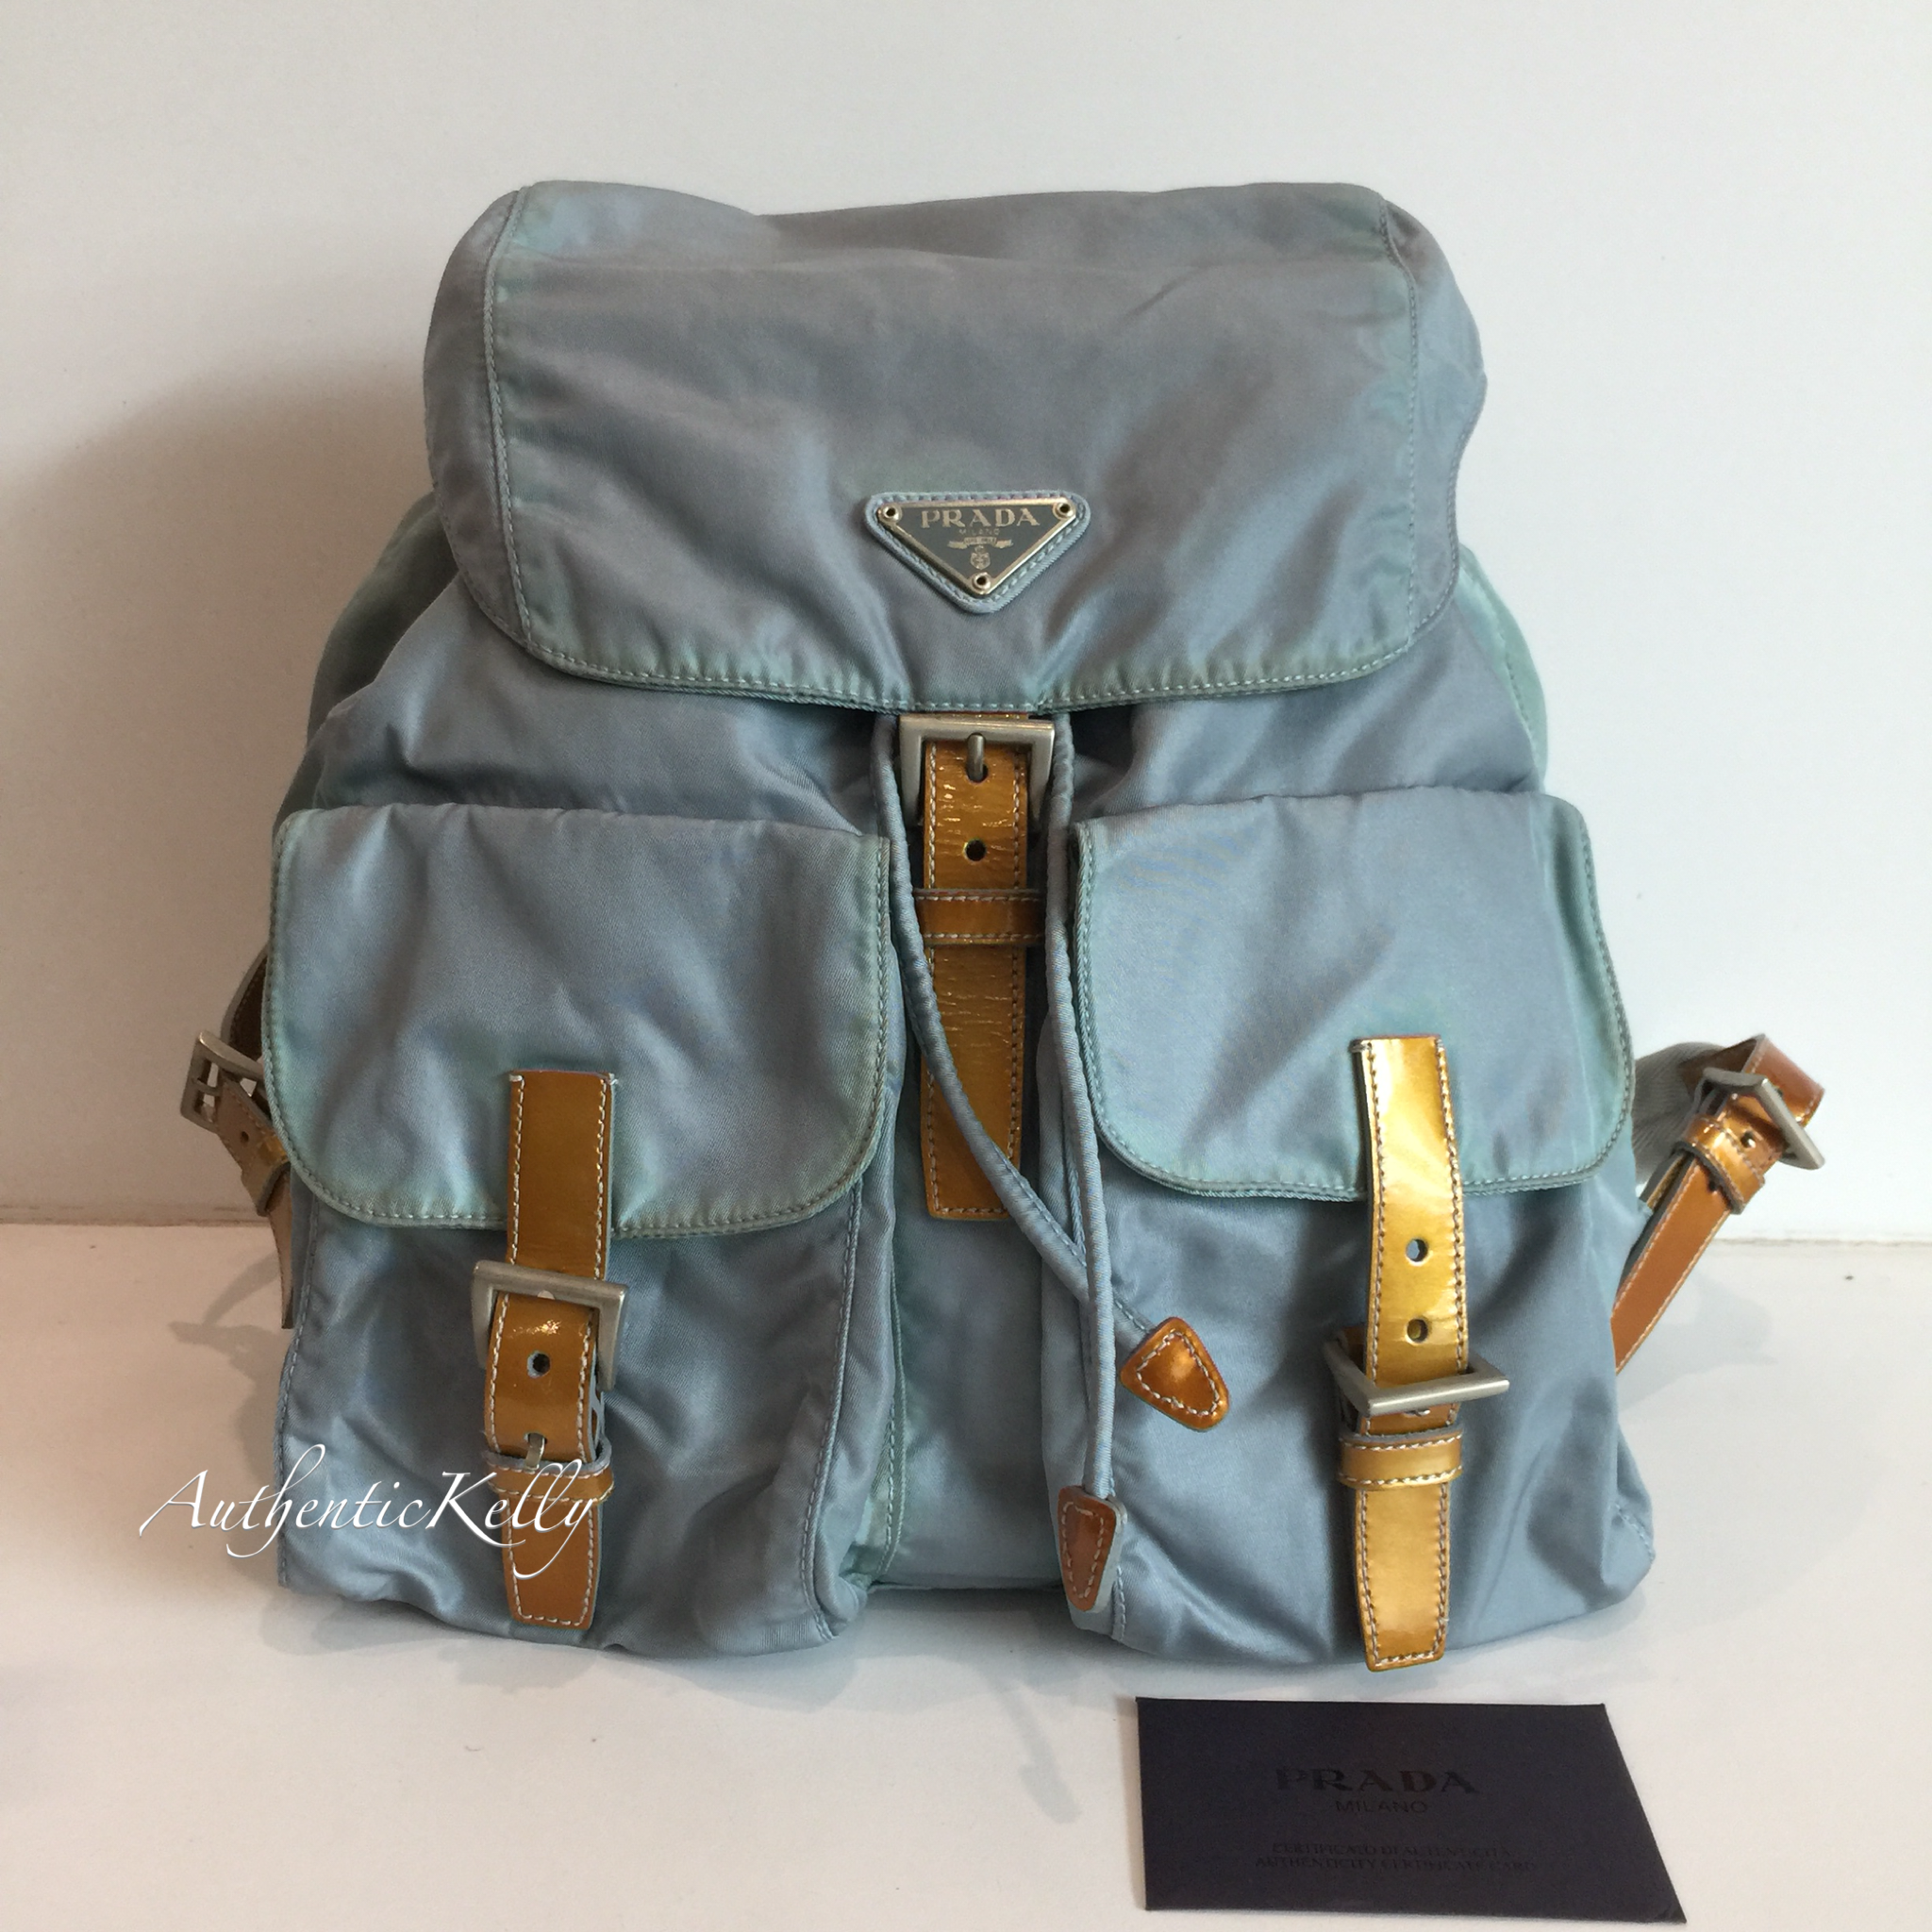 859c70d238b326 PRADA Backpack – AuthenticKelly